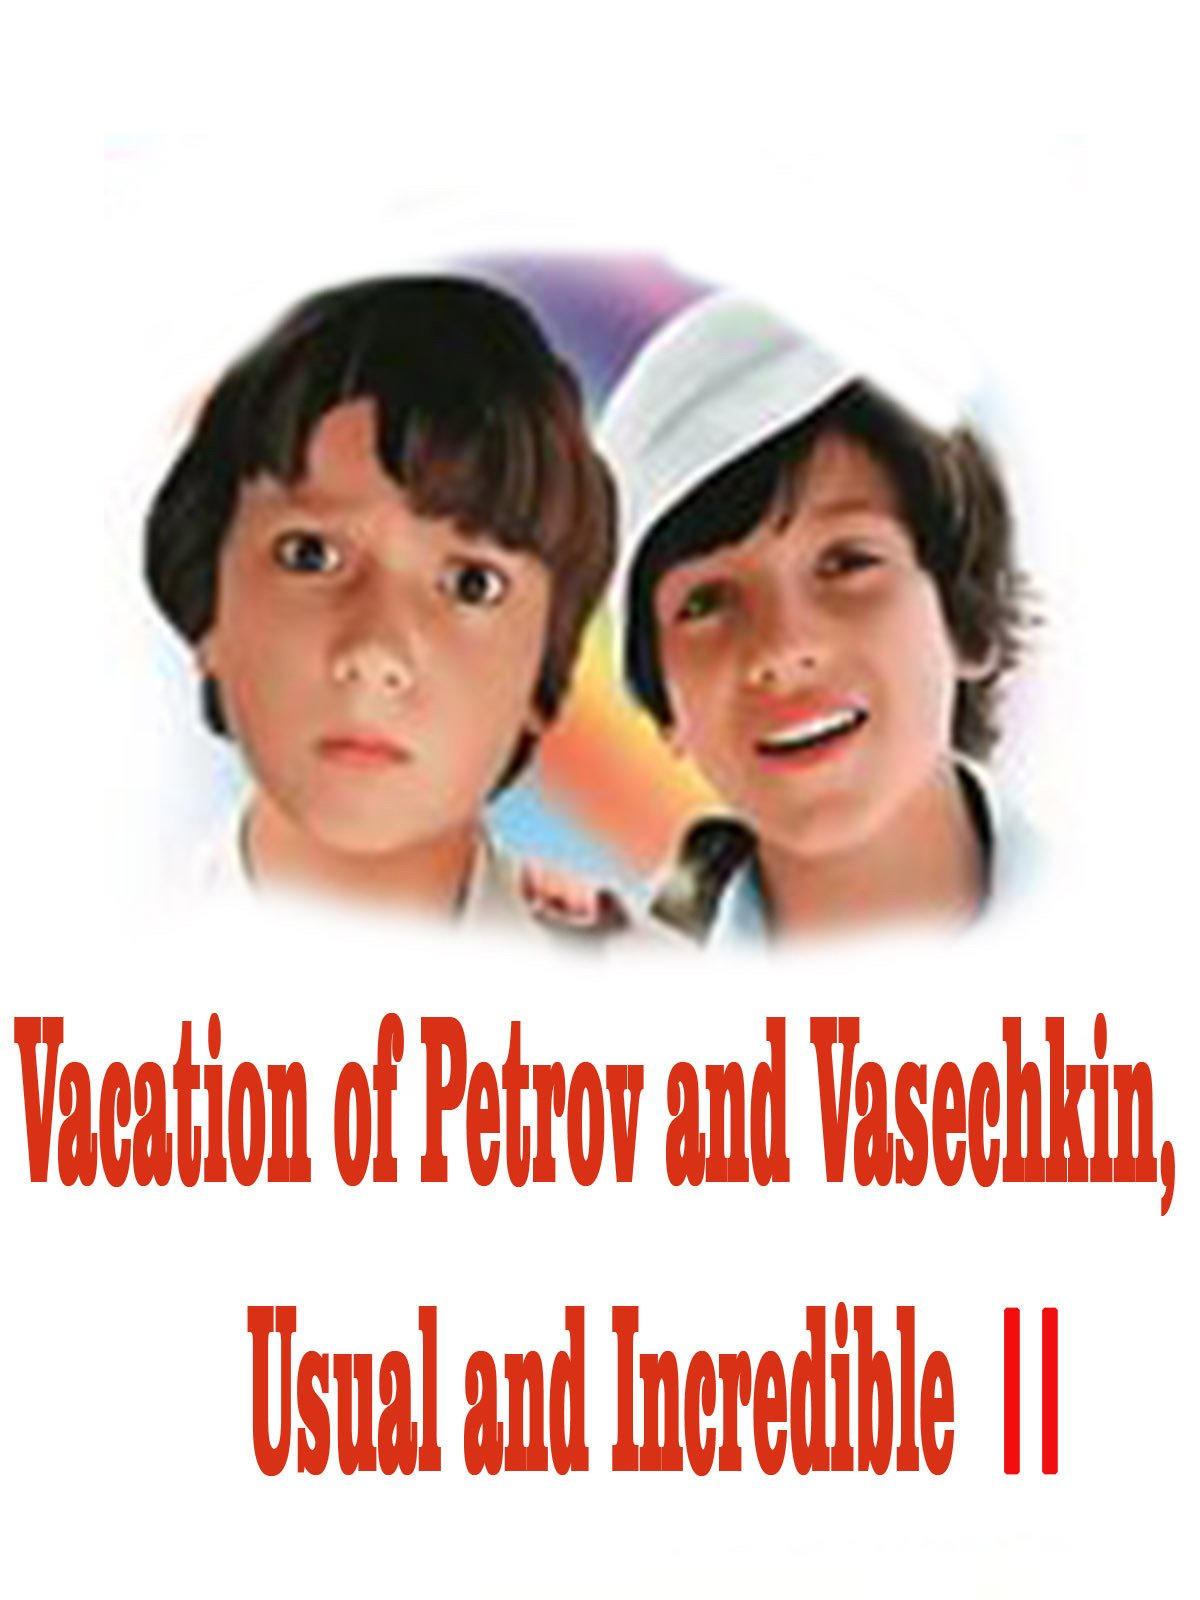 Vacation of Petrov and Vasechkin, Usual and Incredible II